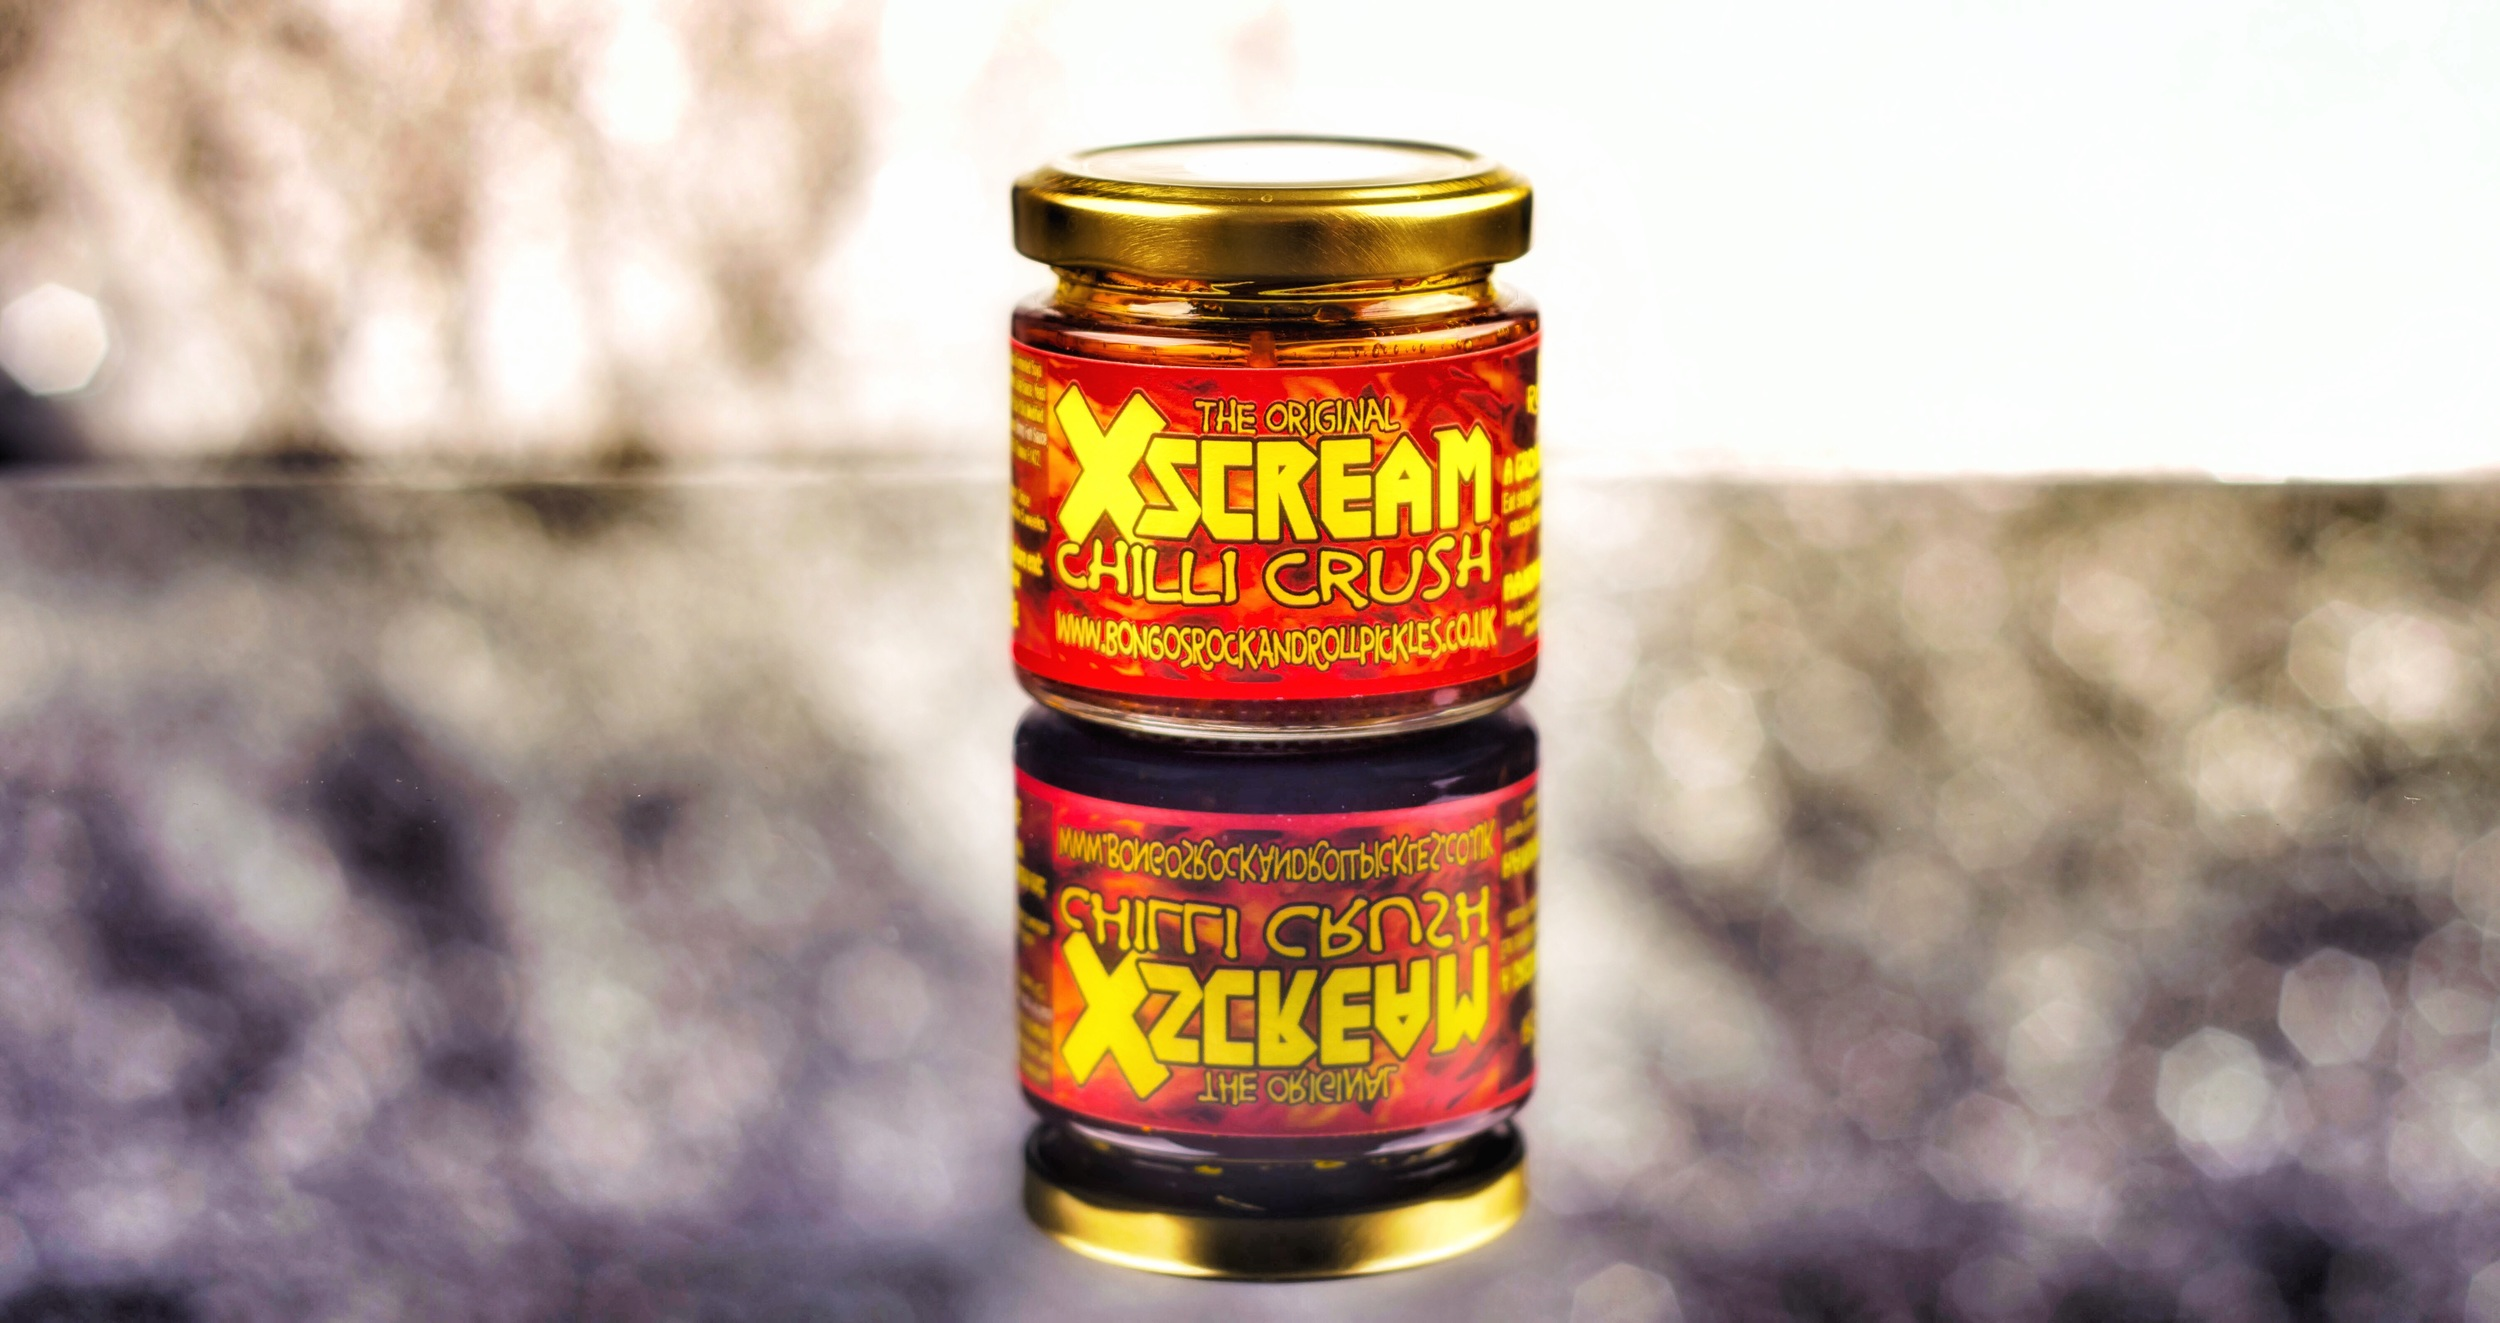 Bongo's Beloved X-Scream Chilli Crush